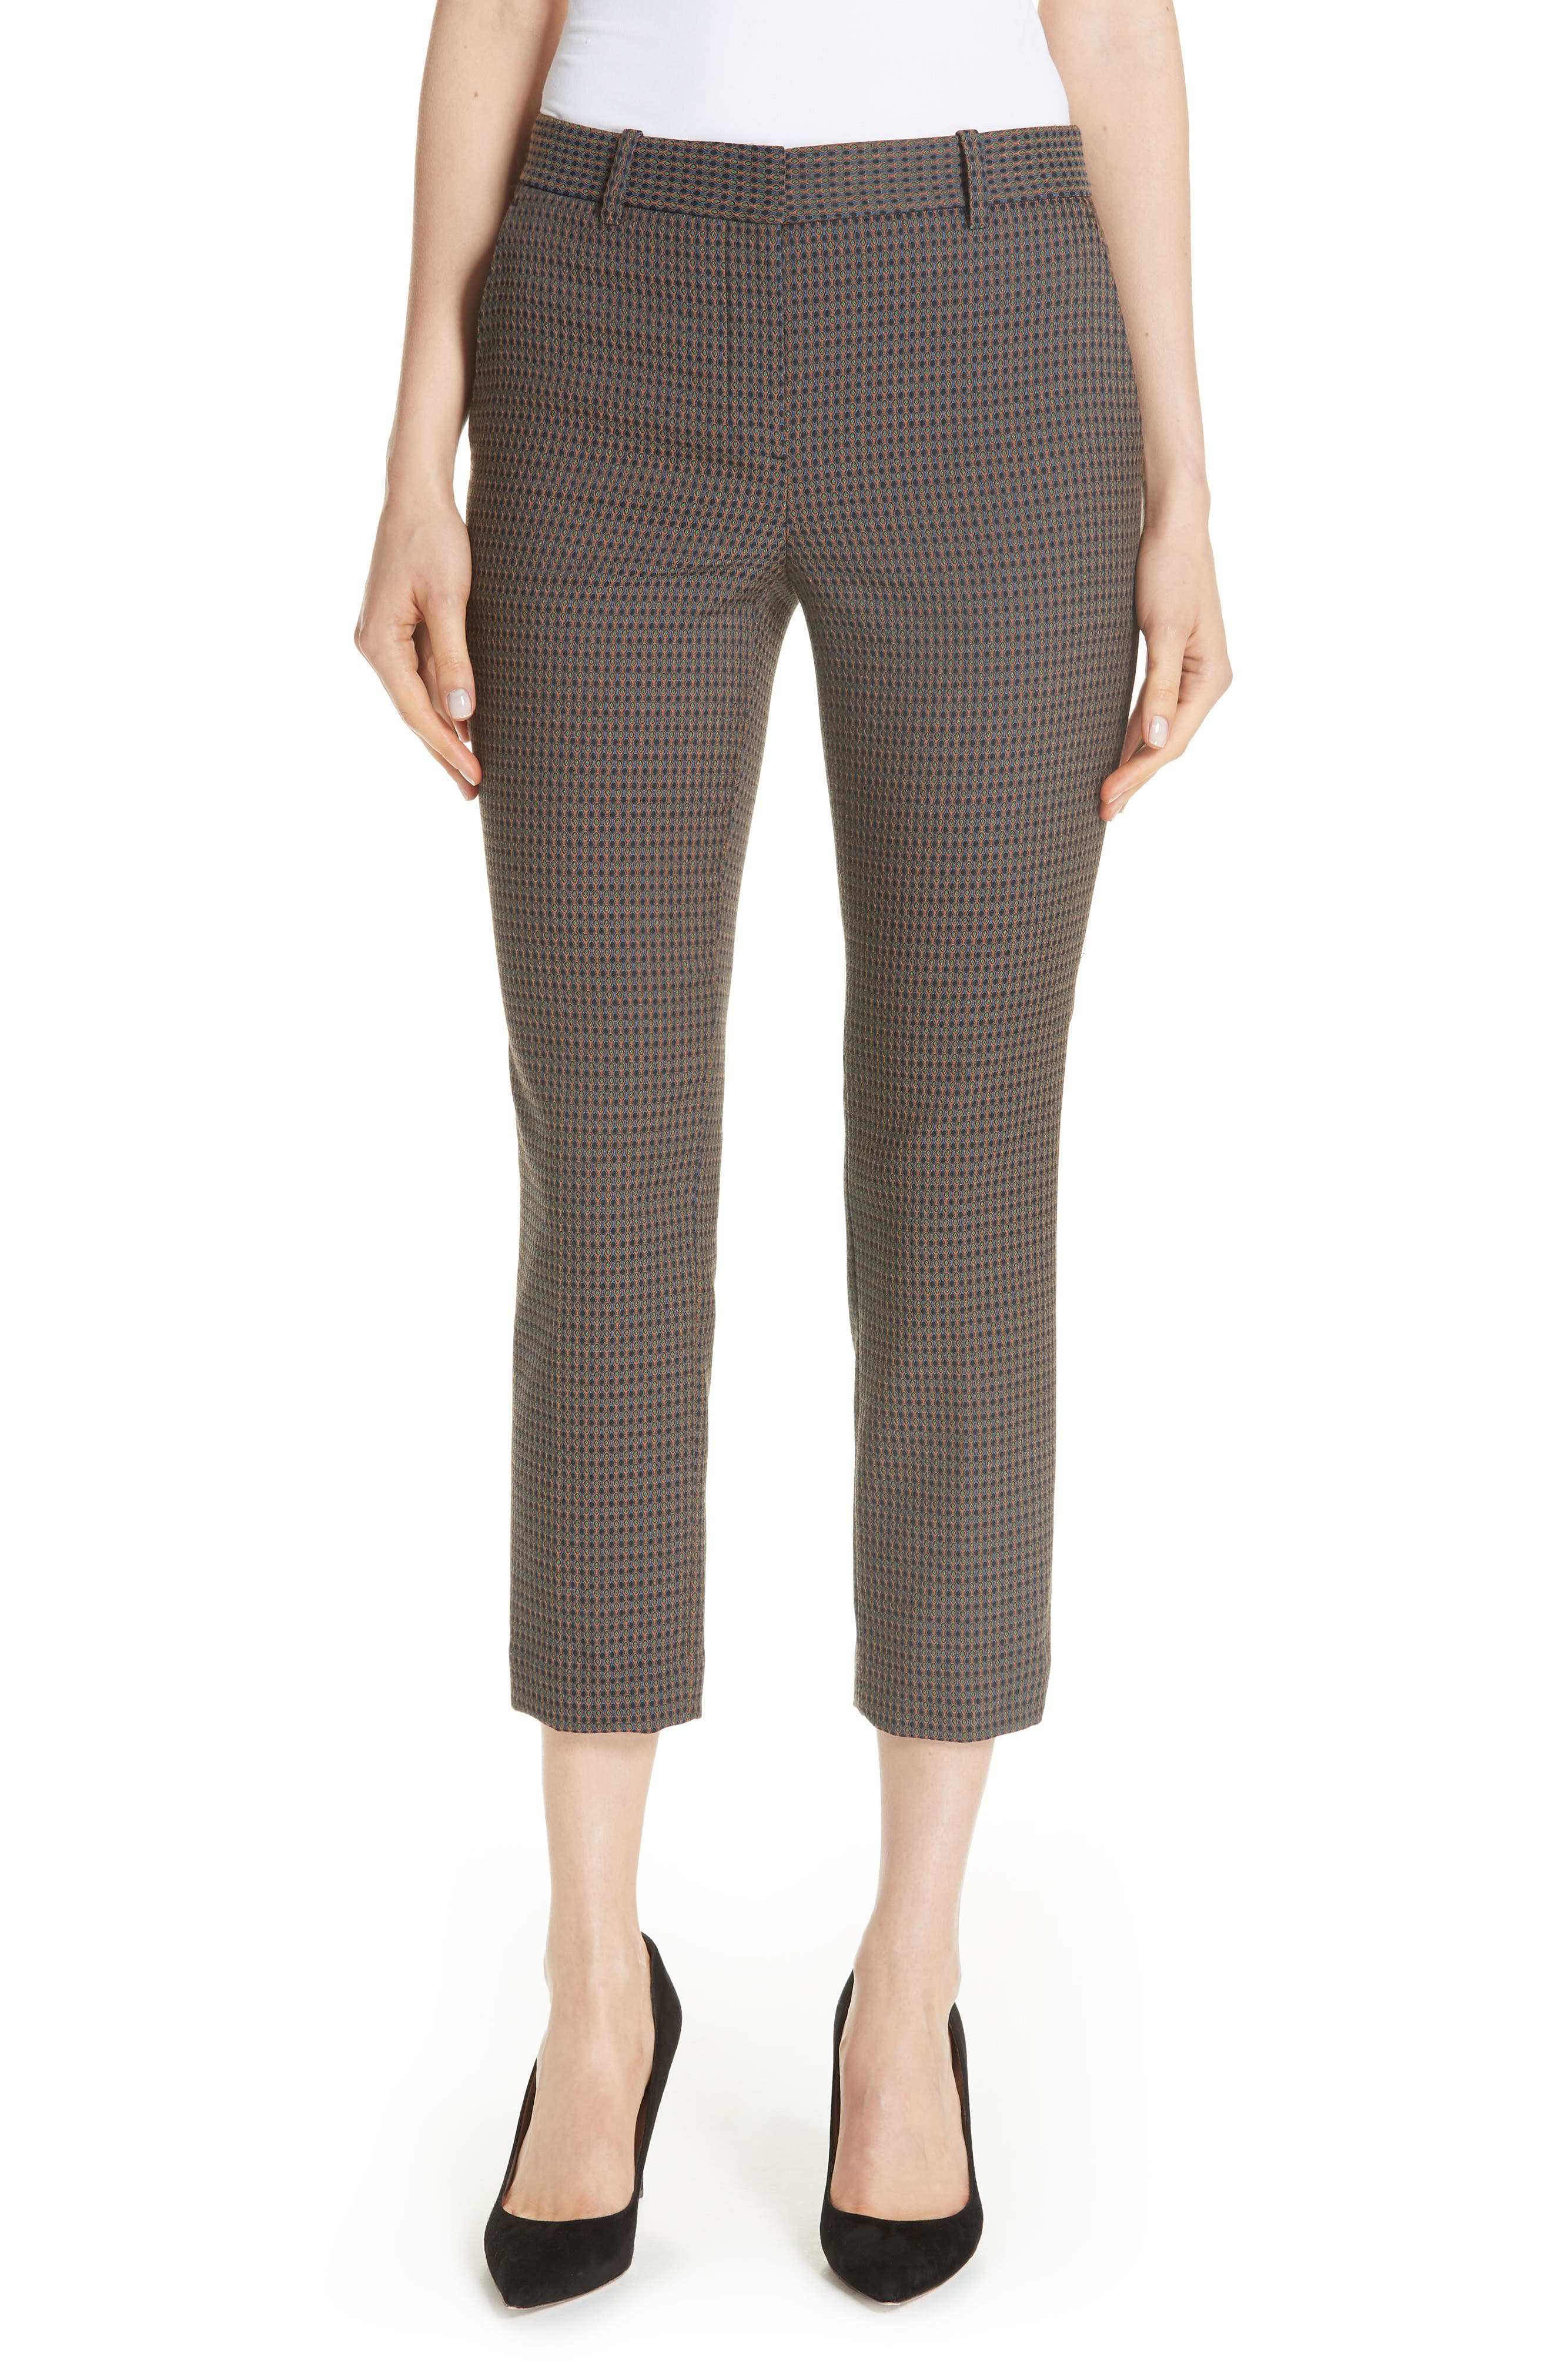 Treeca 2 Dotted-Jacquard Straight-Leg Cropped Pants in Multi